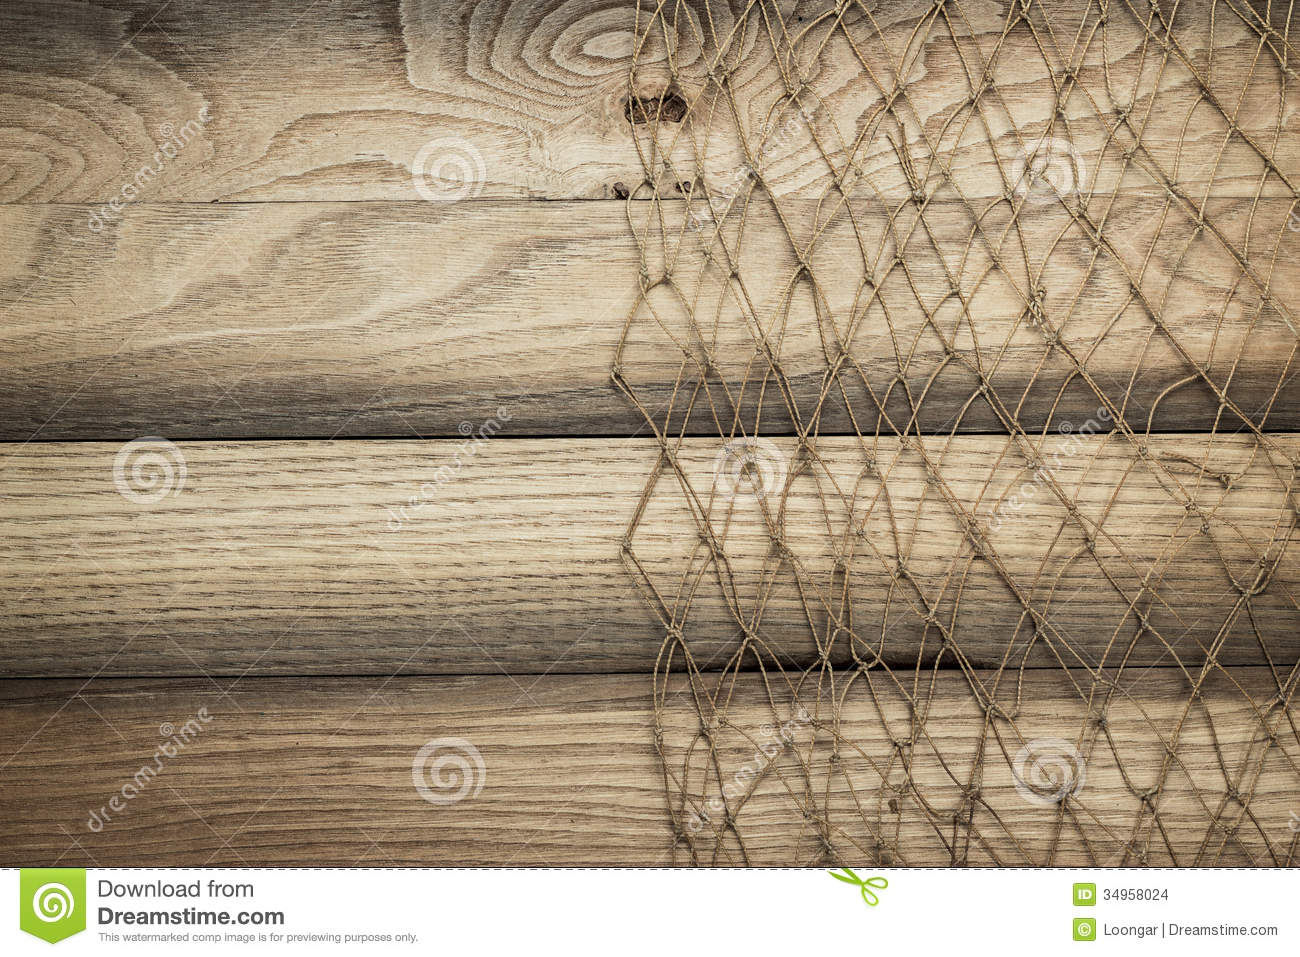 Wooden background texture and fishing net stock images for Wooden fishing net